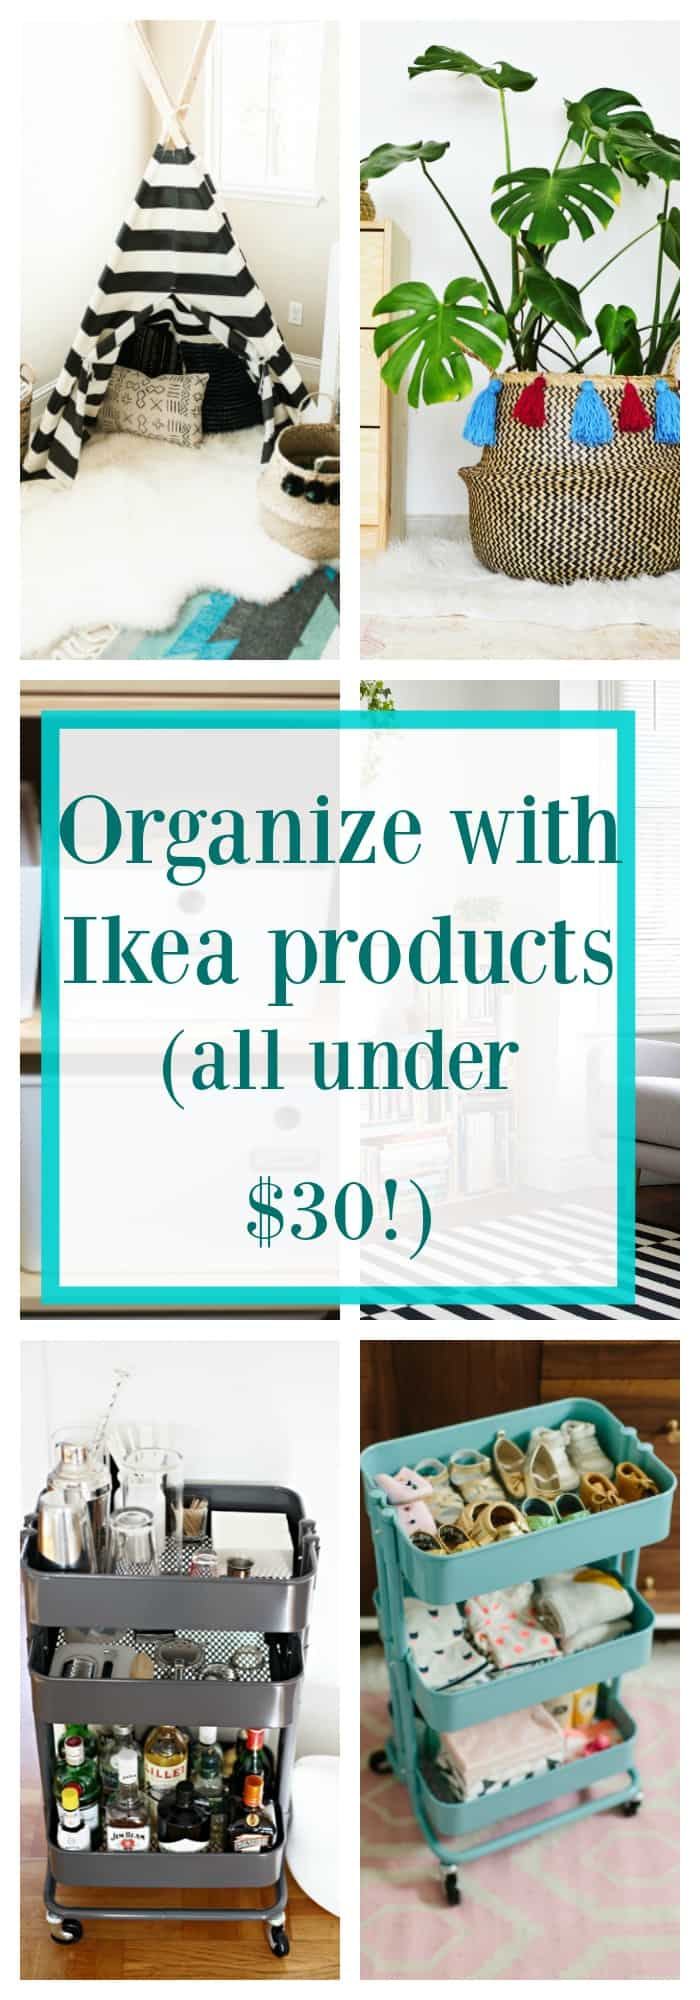 organize-with-ikea-products-under-30